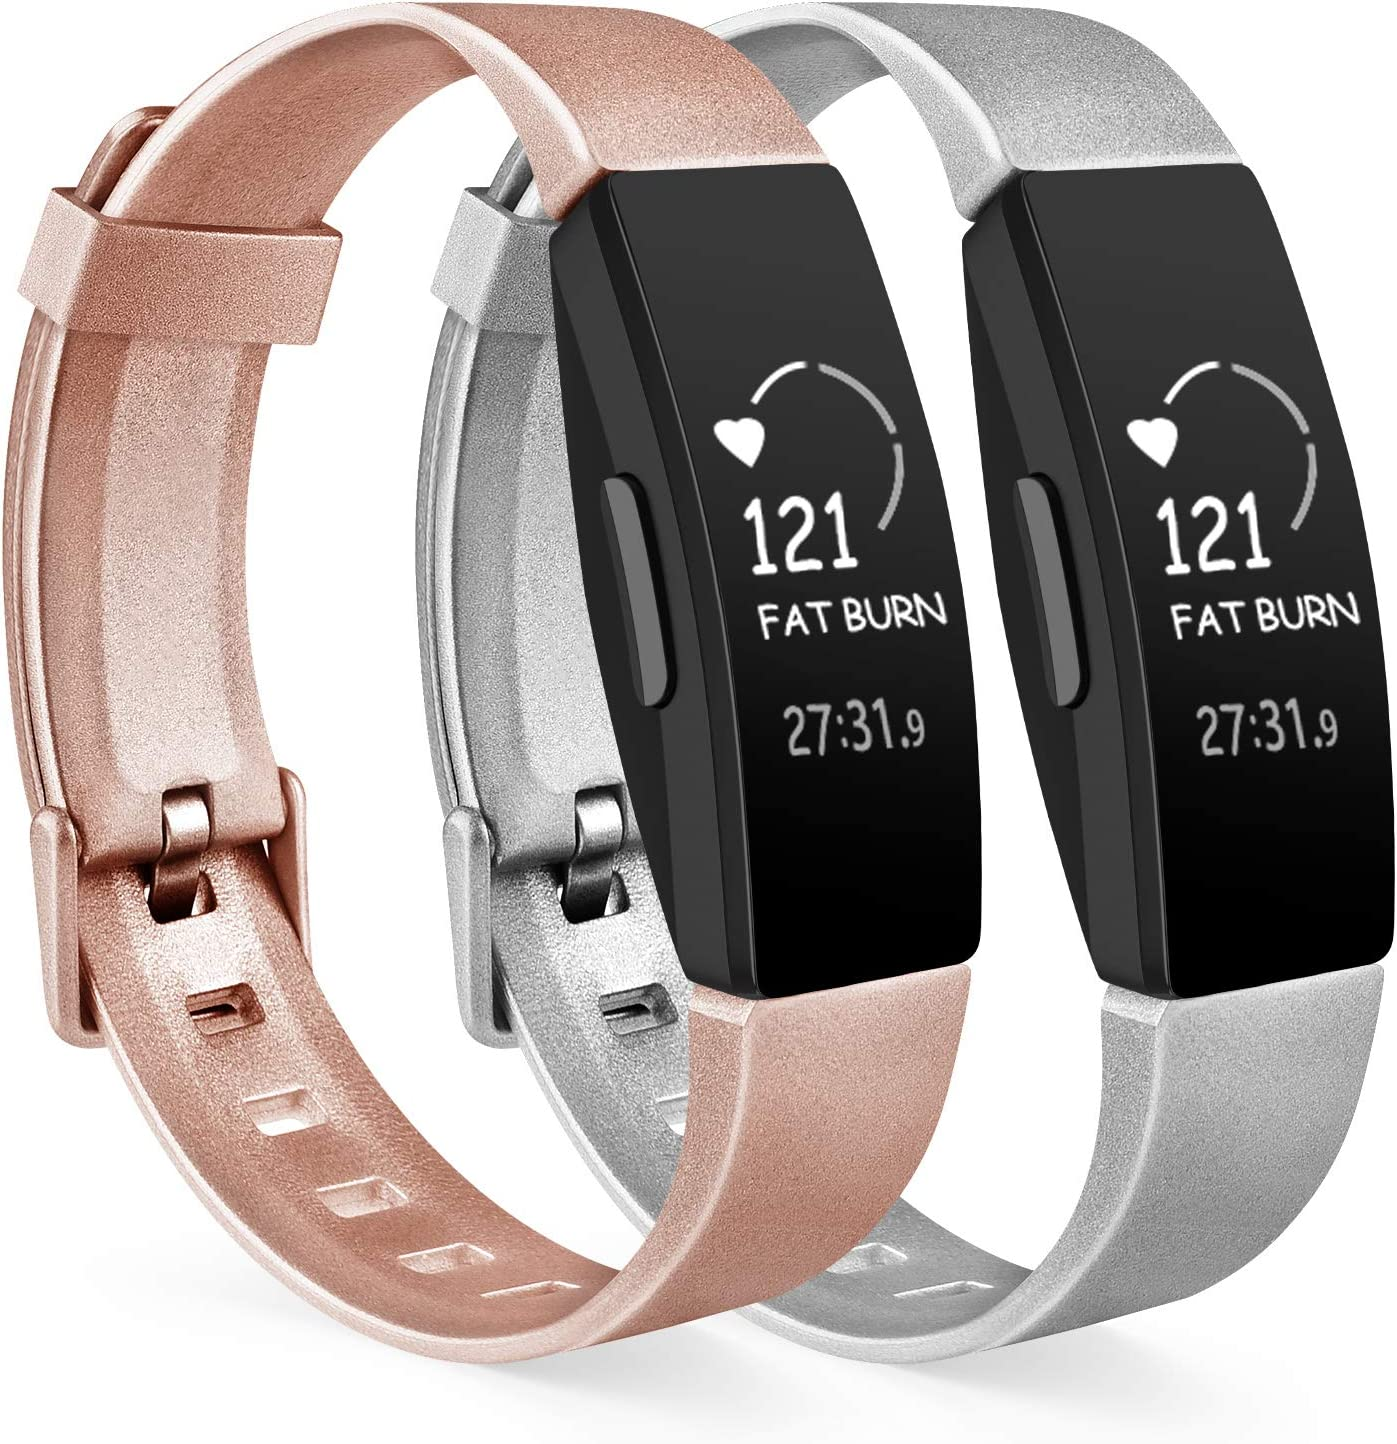 Vancle 2 Pack Rose Gold Silver Bands Compatible with Fitbit Inspire HR Inspire Ace 2 Fitness Tracker for Women Men, Sport Silicone Wristbands for Fitbit Inspire HR